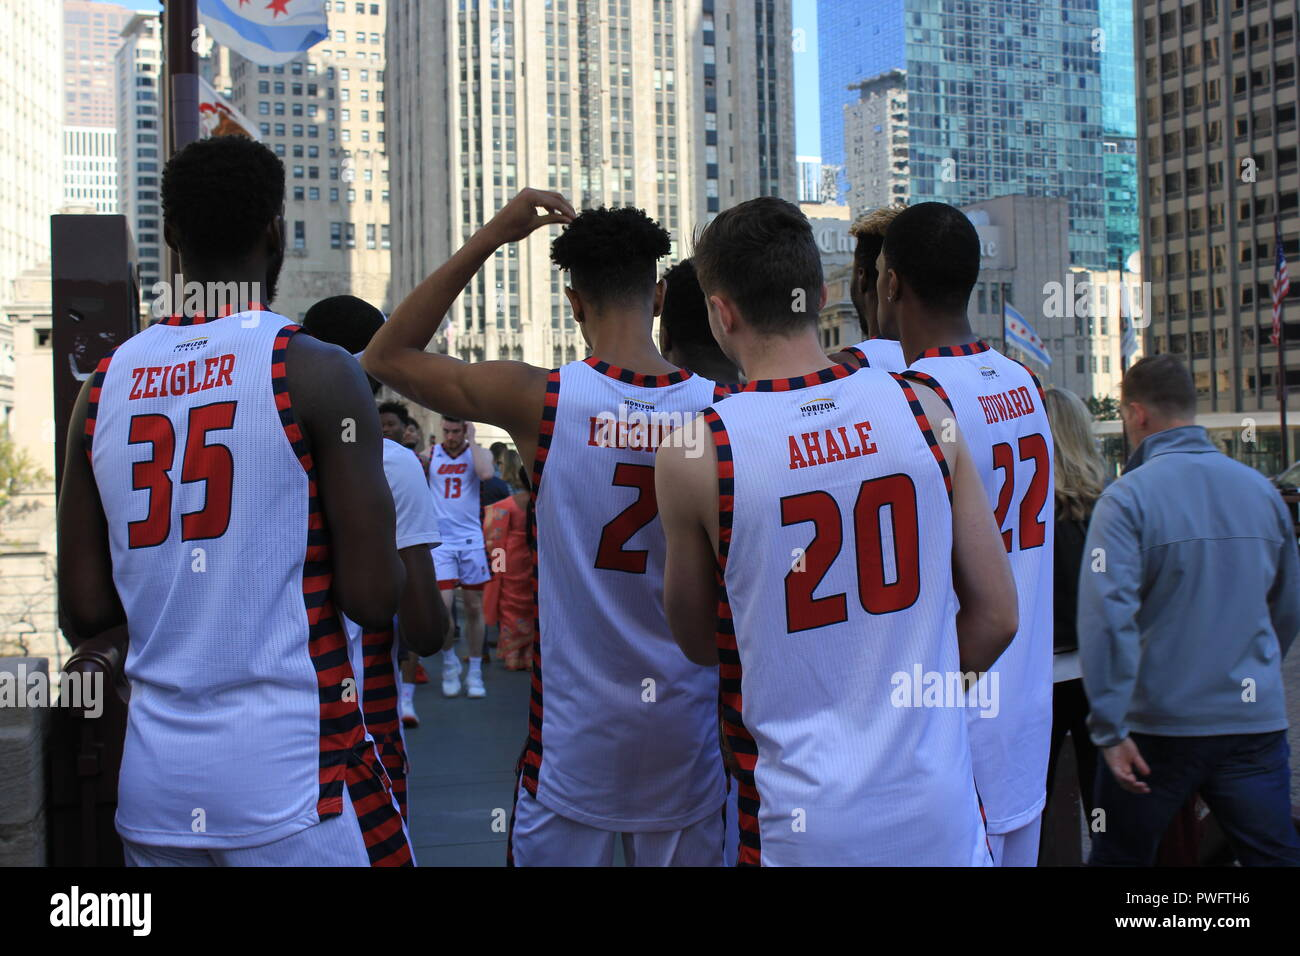 #rawimagery raw imagery and candid photography College basketball team player scratching his head on Michigan Avenue. Diggins, Ahale, Ziegler - Stock Image